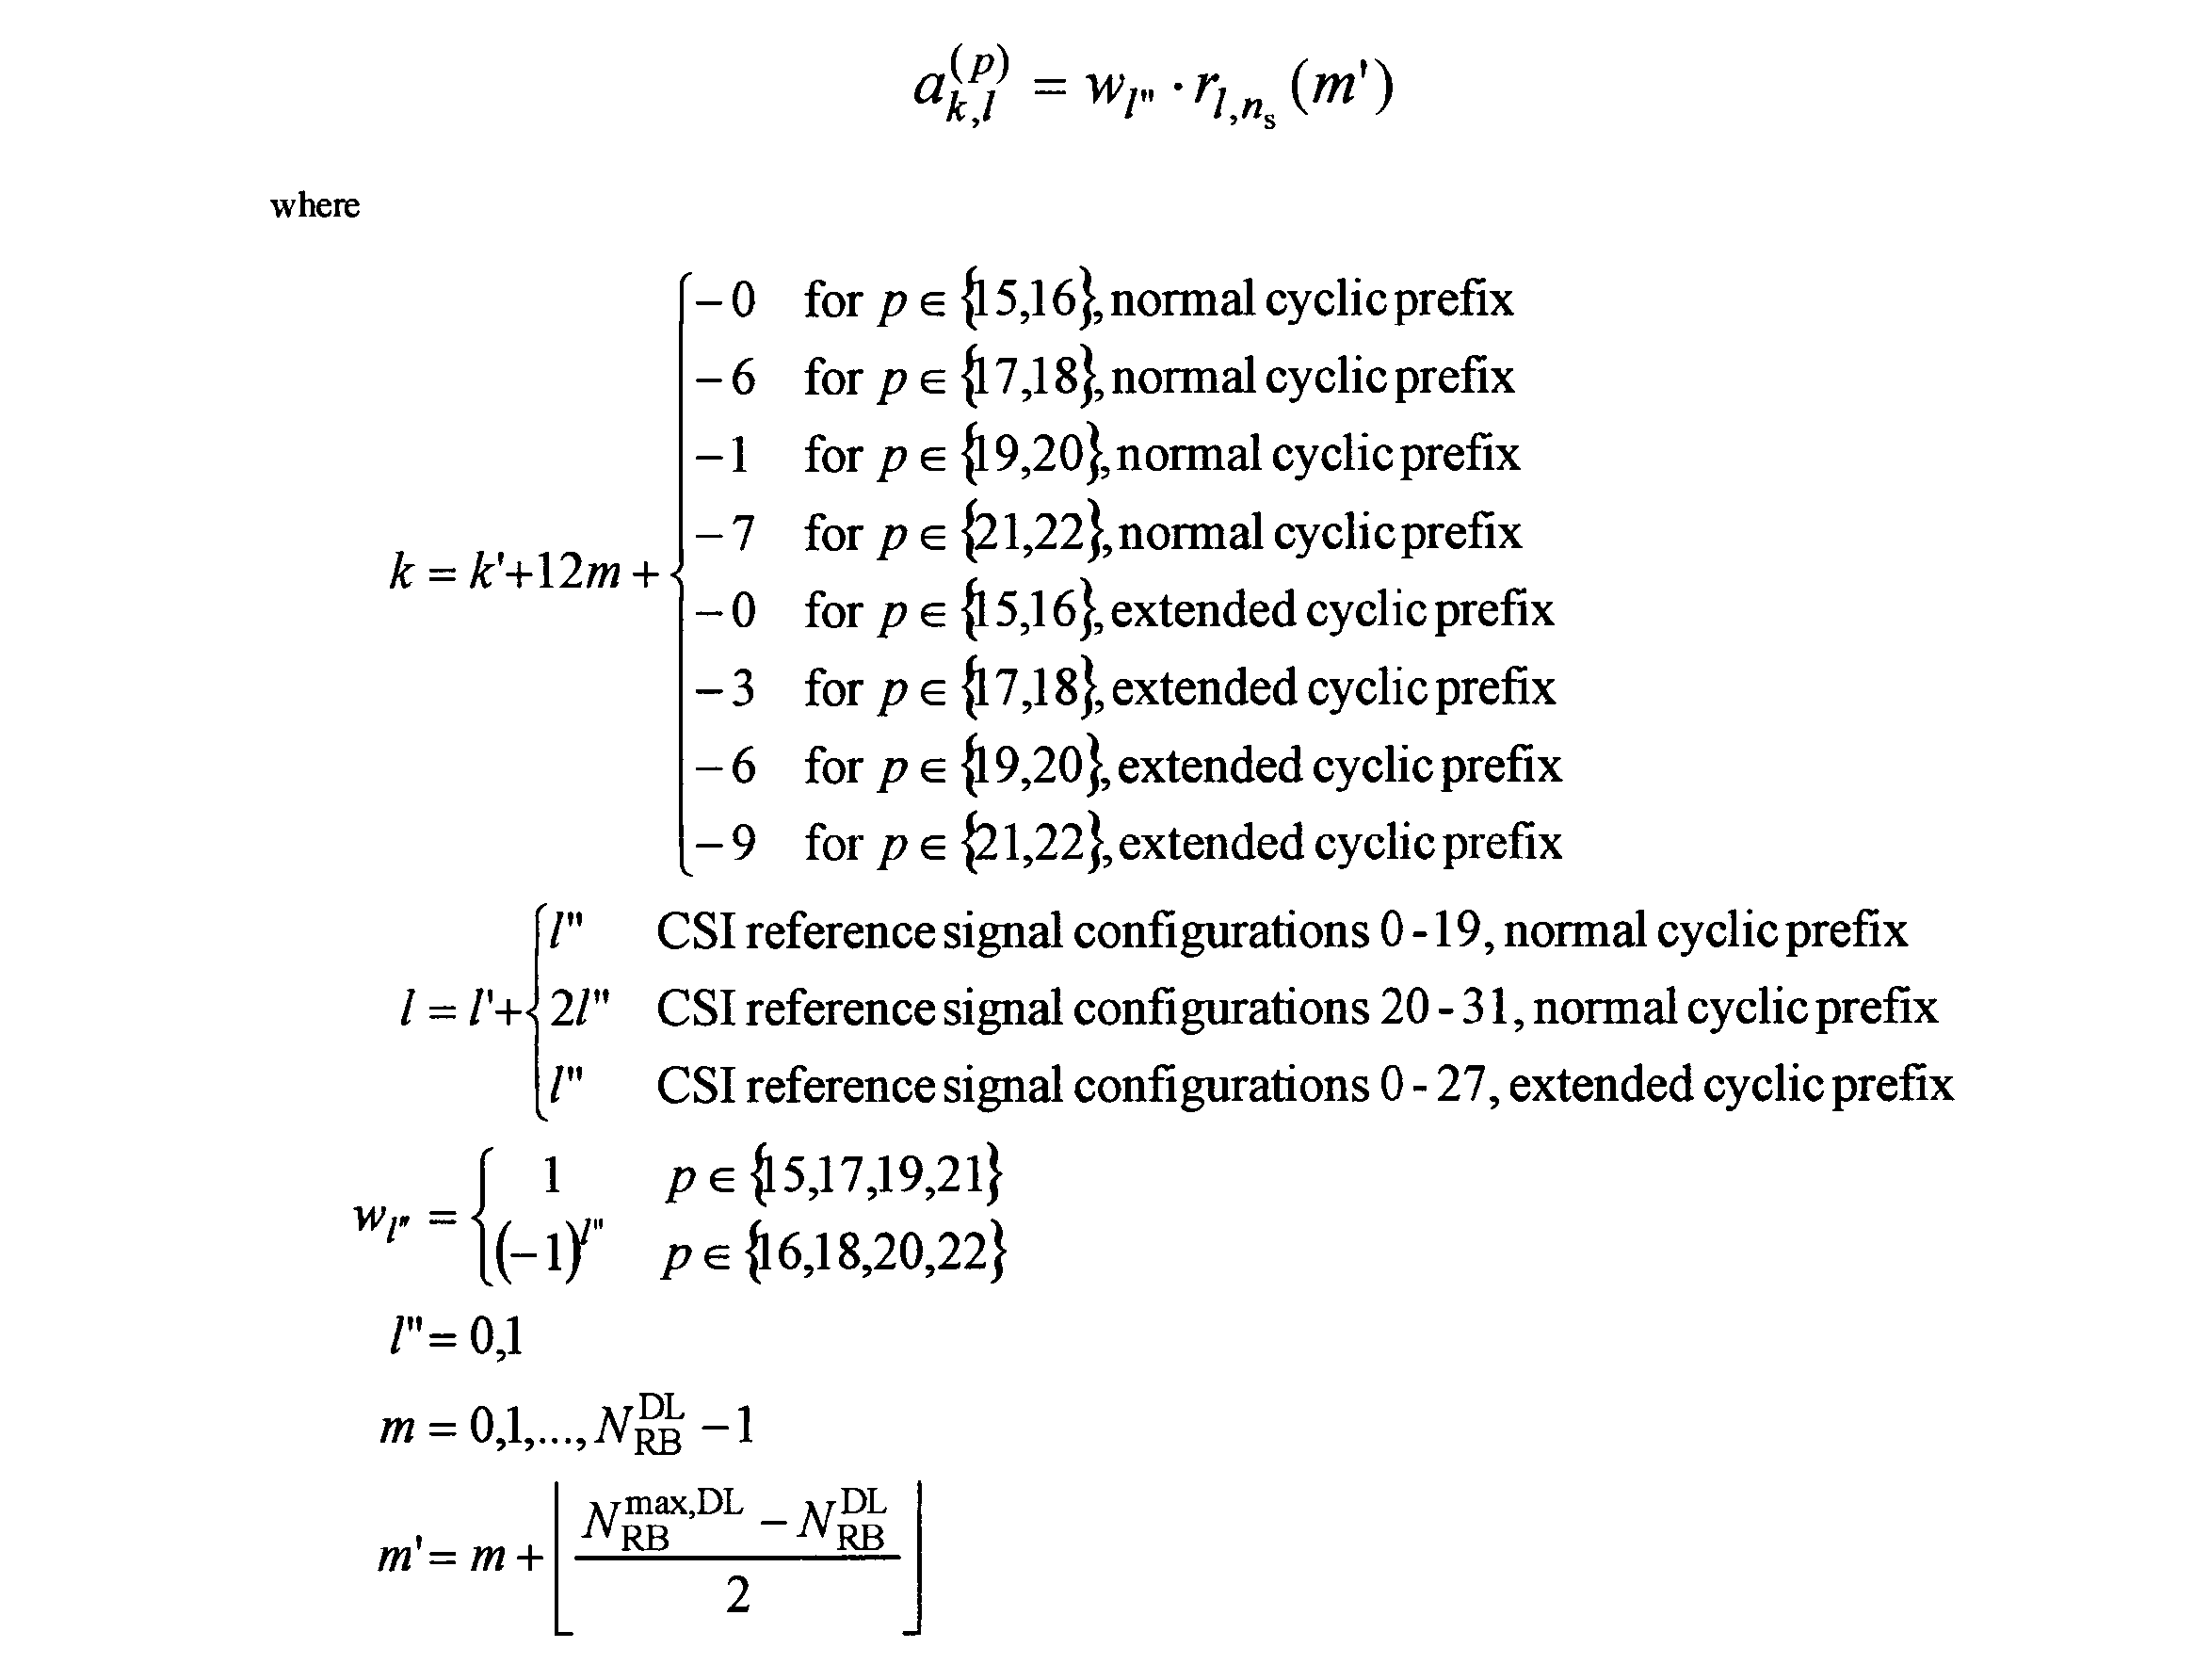 Figure WO-DOC-MATHS-64